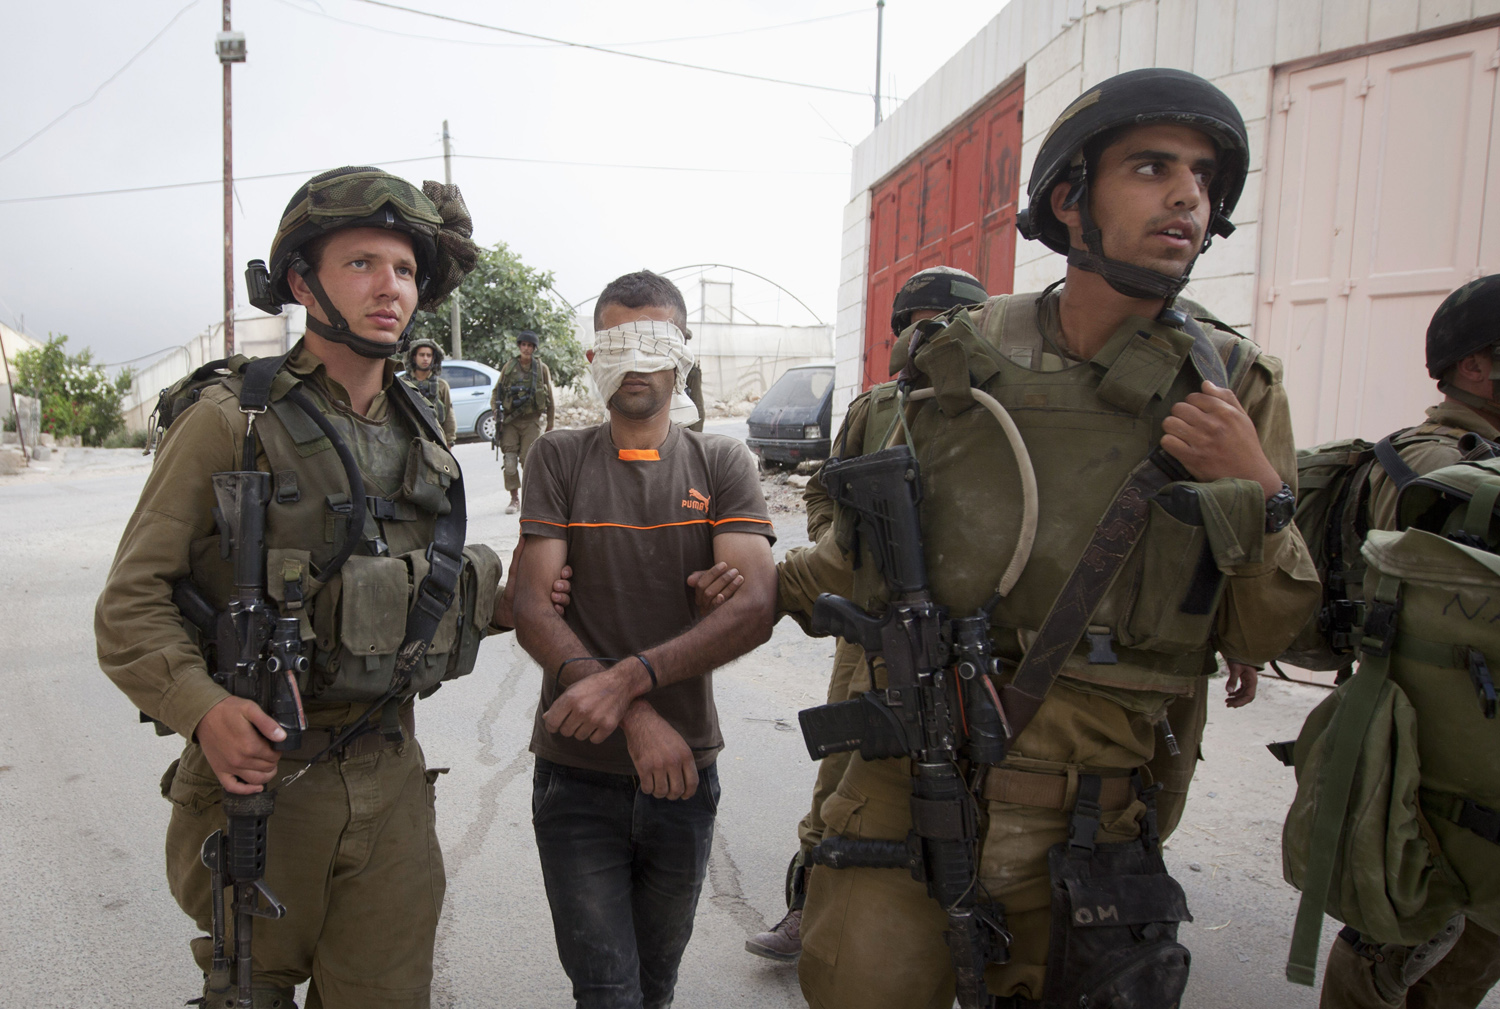 Israeli soldiers arrest a Palestinian man during a search for three missing Israeli teens, feared abducted in the West Bank last week, in the village of Beit Kahil near the West Bank city of Hebron on June 21, 2014.